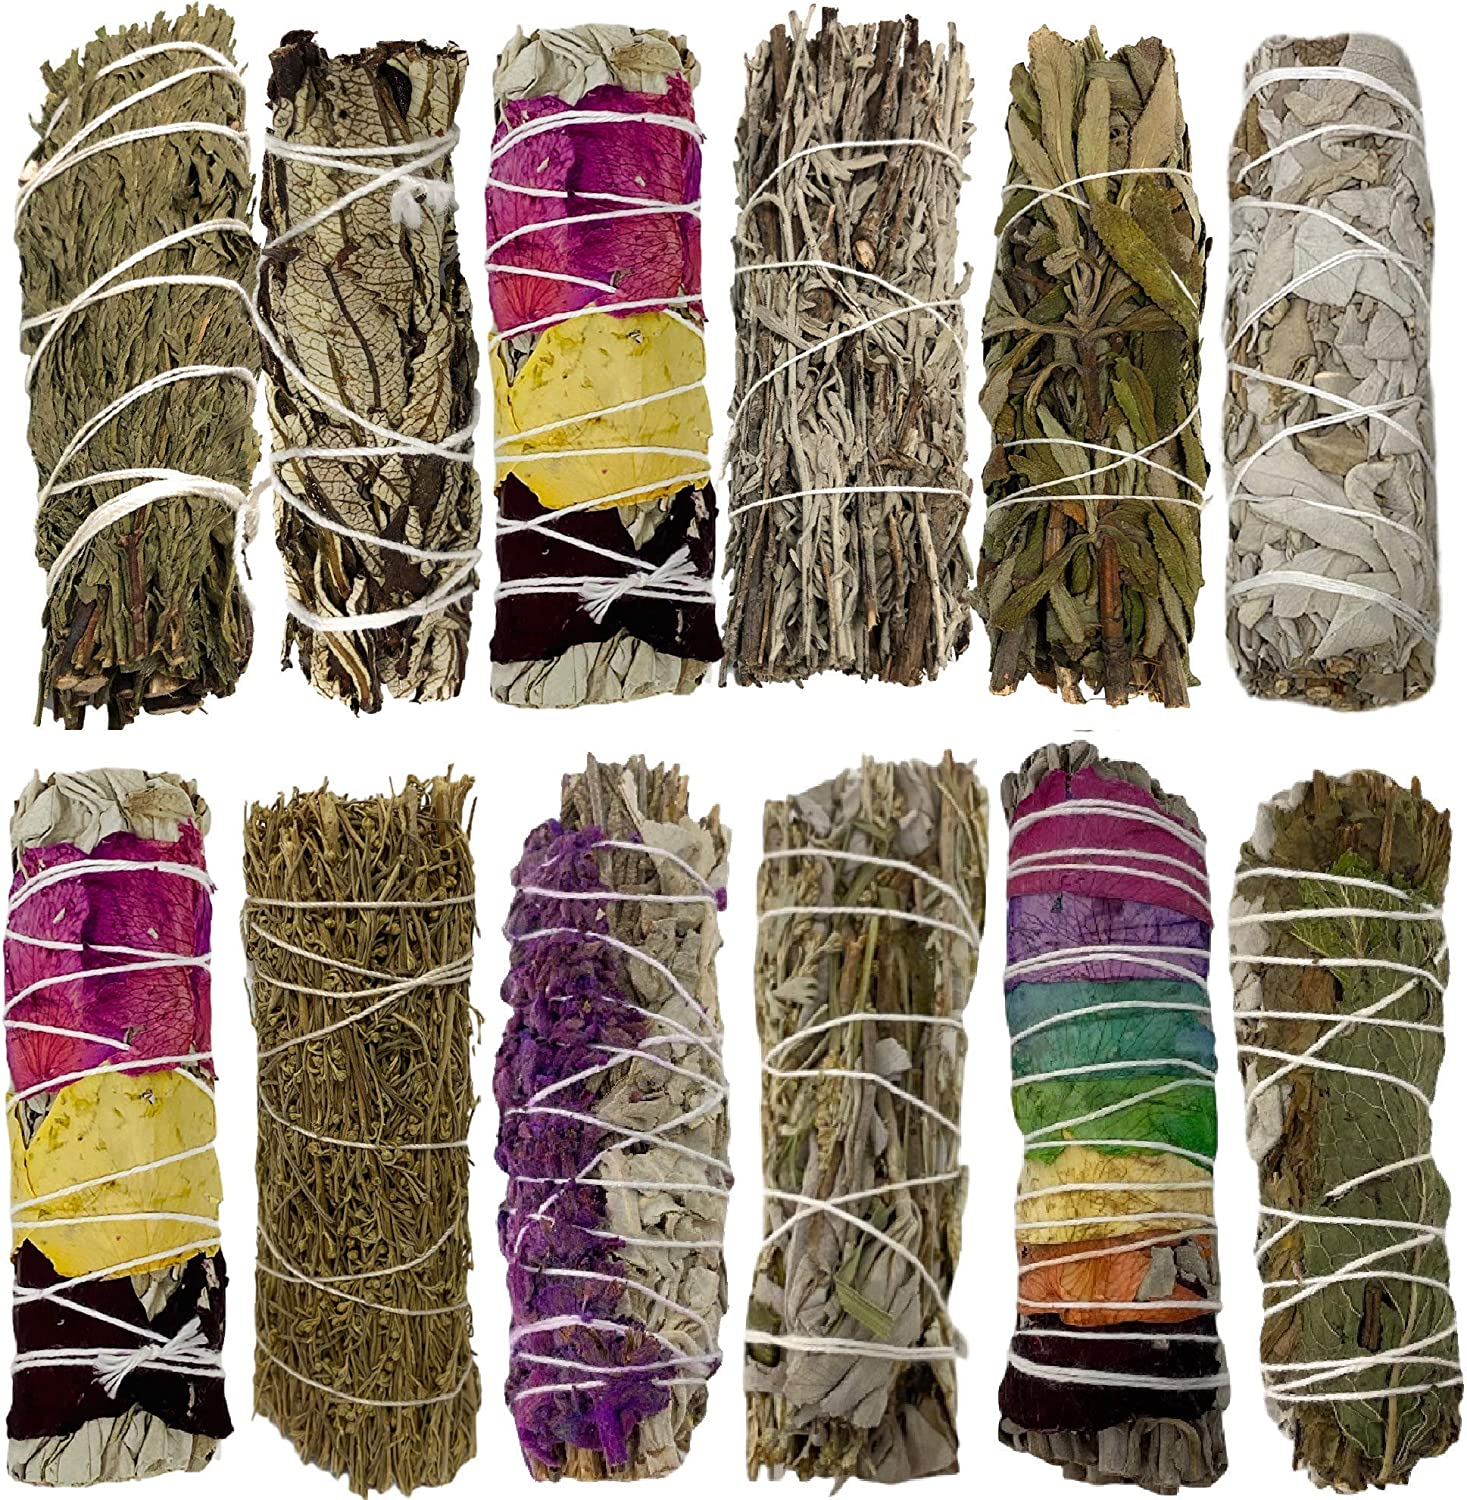 Sage Smudge Kit - Sage Incense Sticks for Cleansing - White Sage Smudge Sticks - Smudging Kit Sage Bundles to Cleanse Home - Sage Sticks Cleansing and Healing - Sage for Cleansing Negative Energy